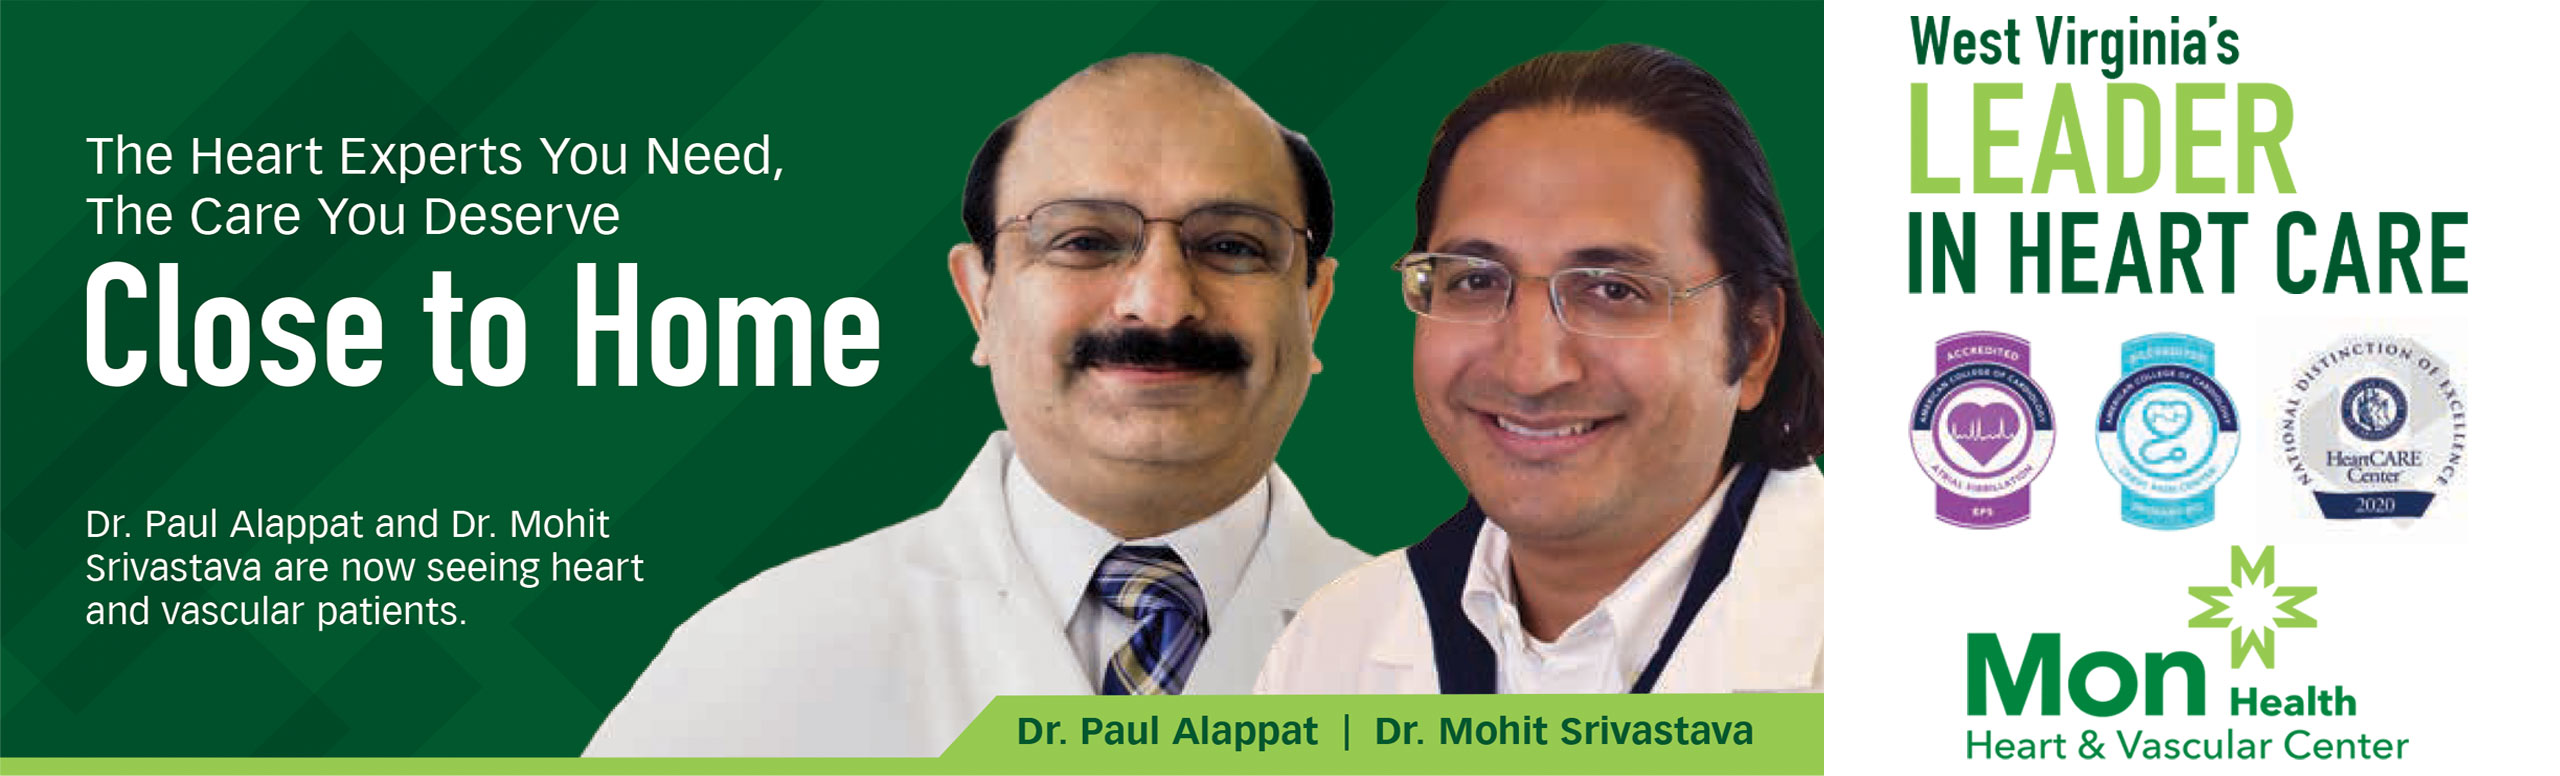 The heart experts you need the care you deserve close to home. Dr. Paul Alappat and Dr. Mohit Srivastava are now seeing heart and vascular patients.